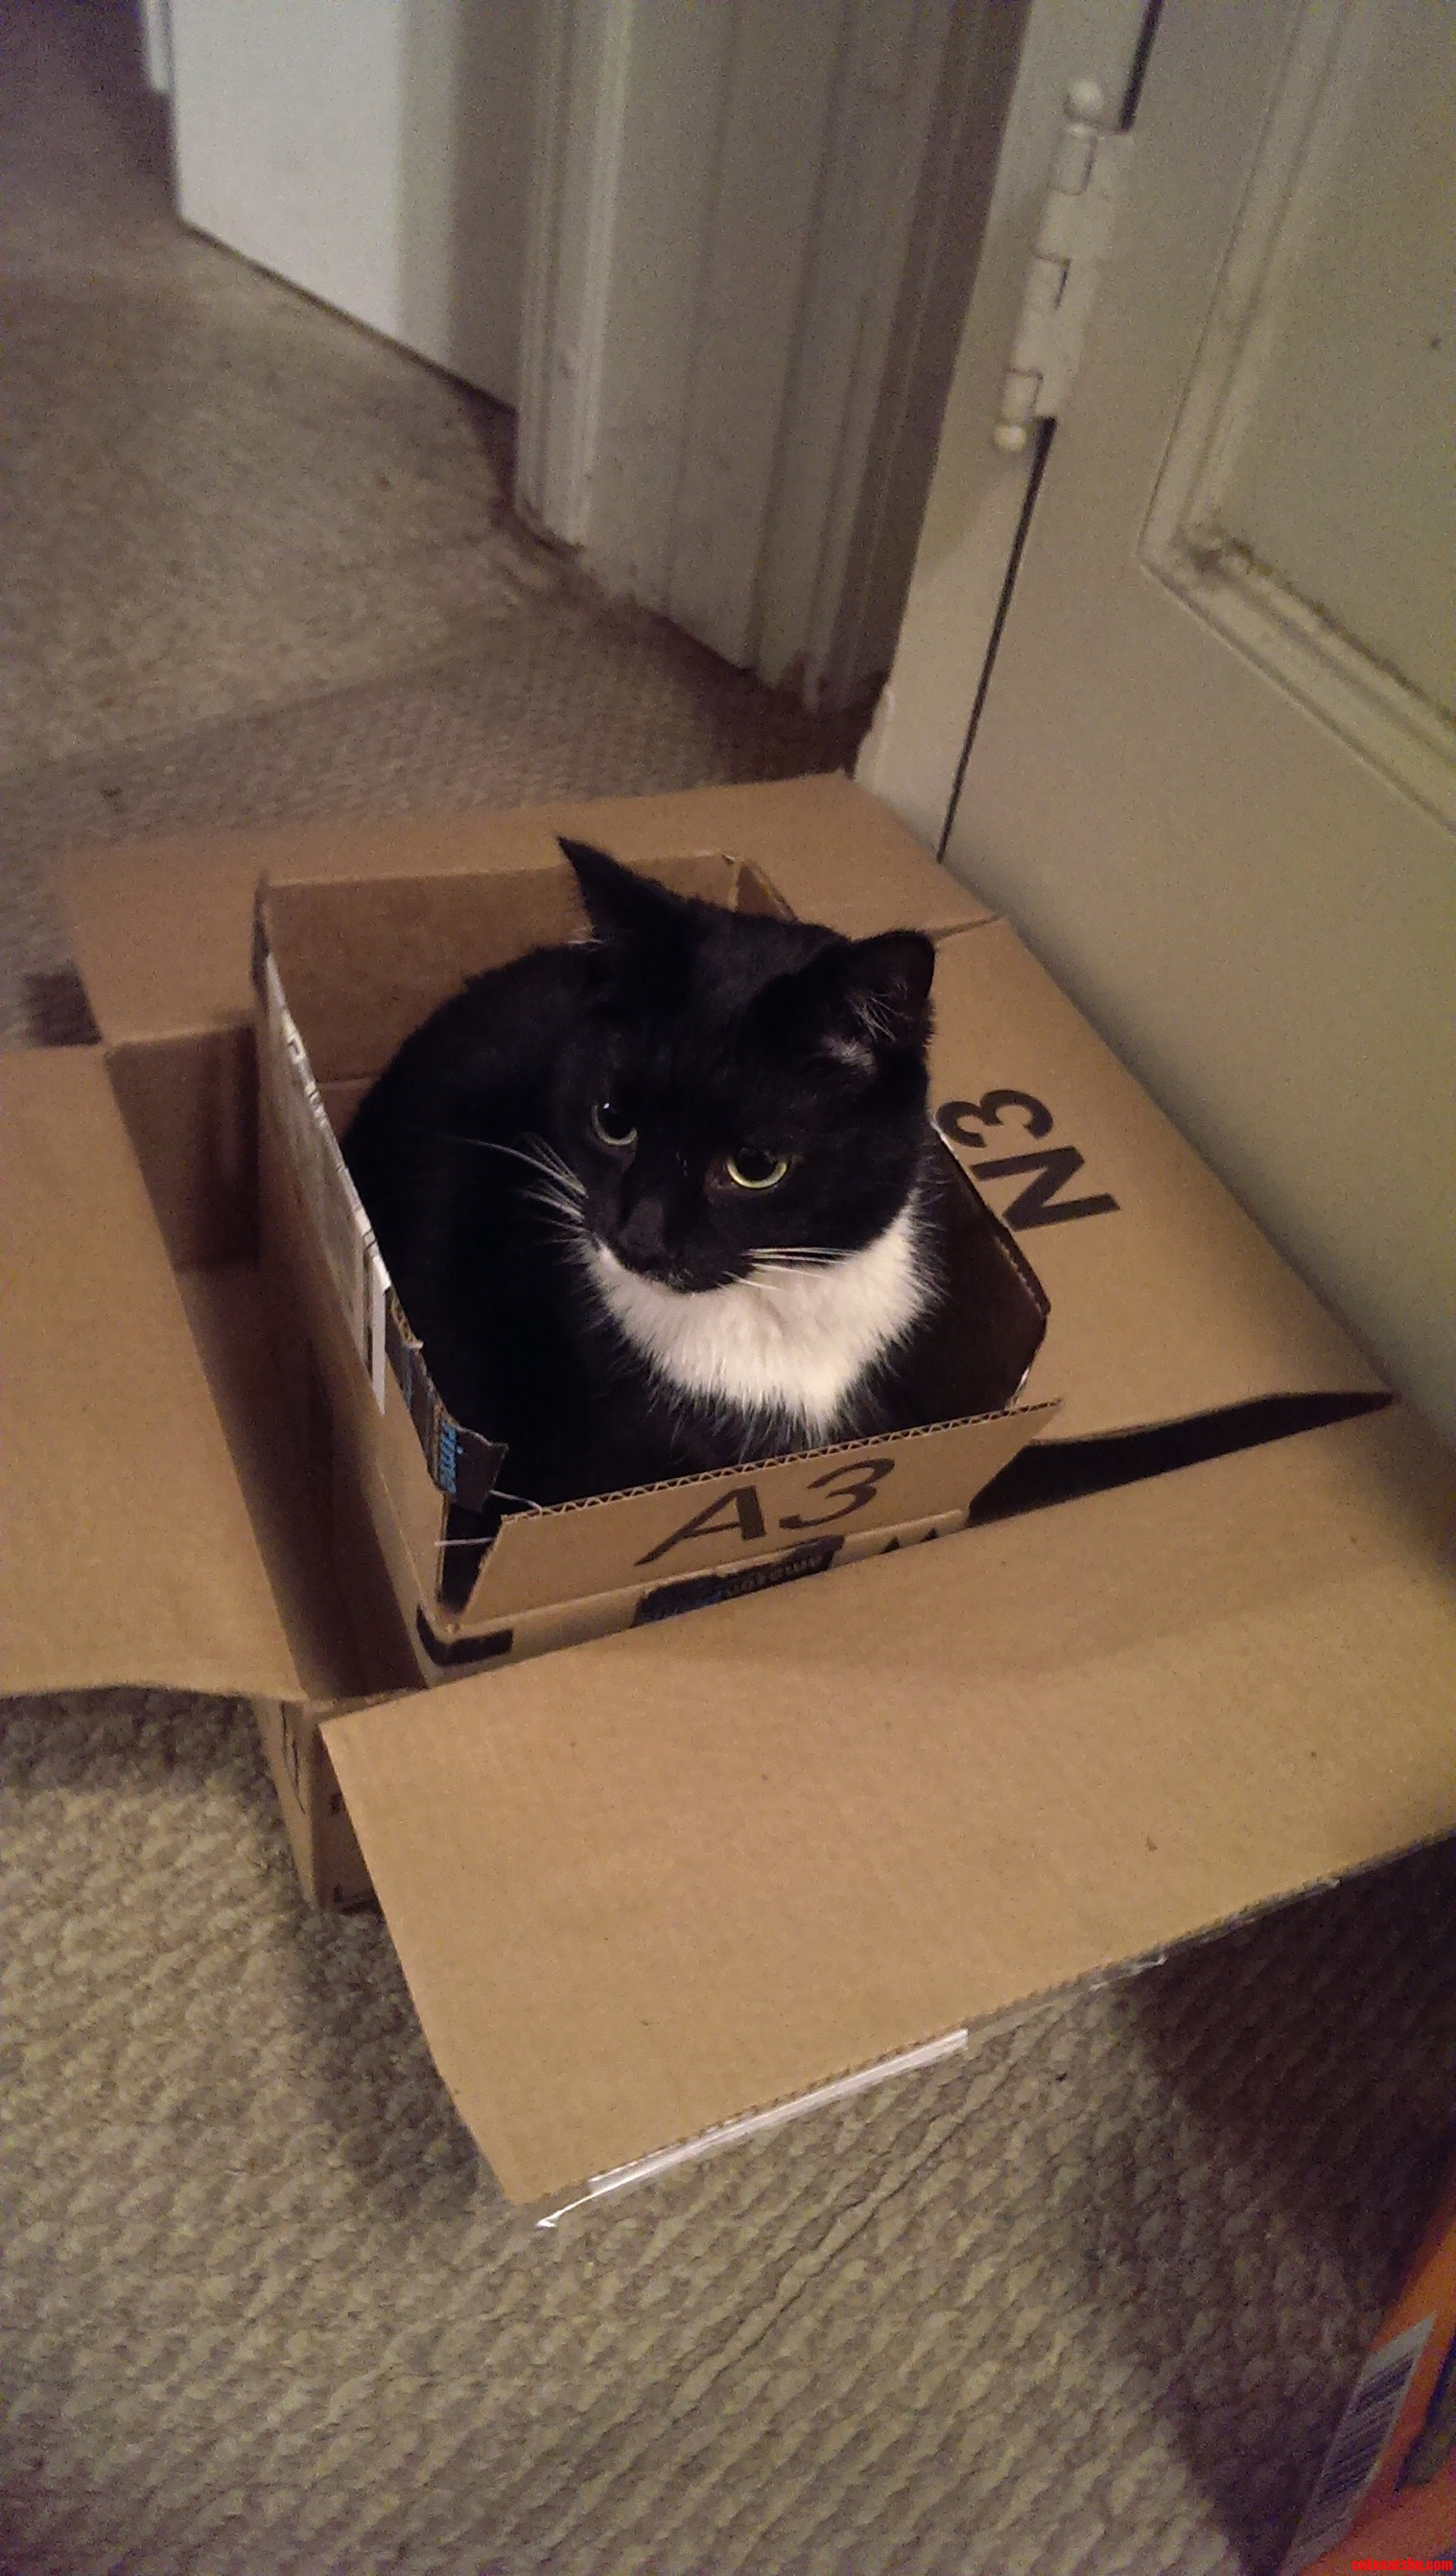 I Came Home To This. Boxception.